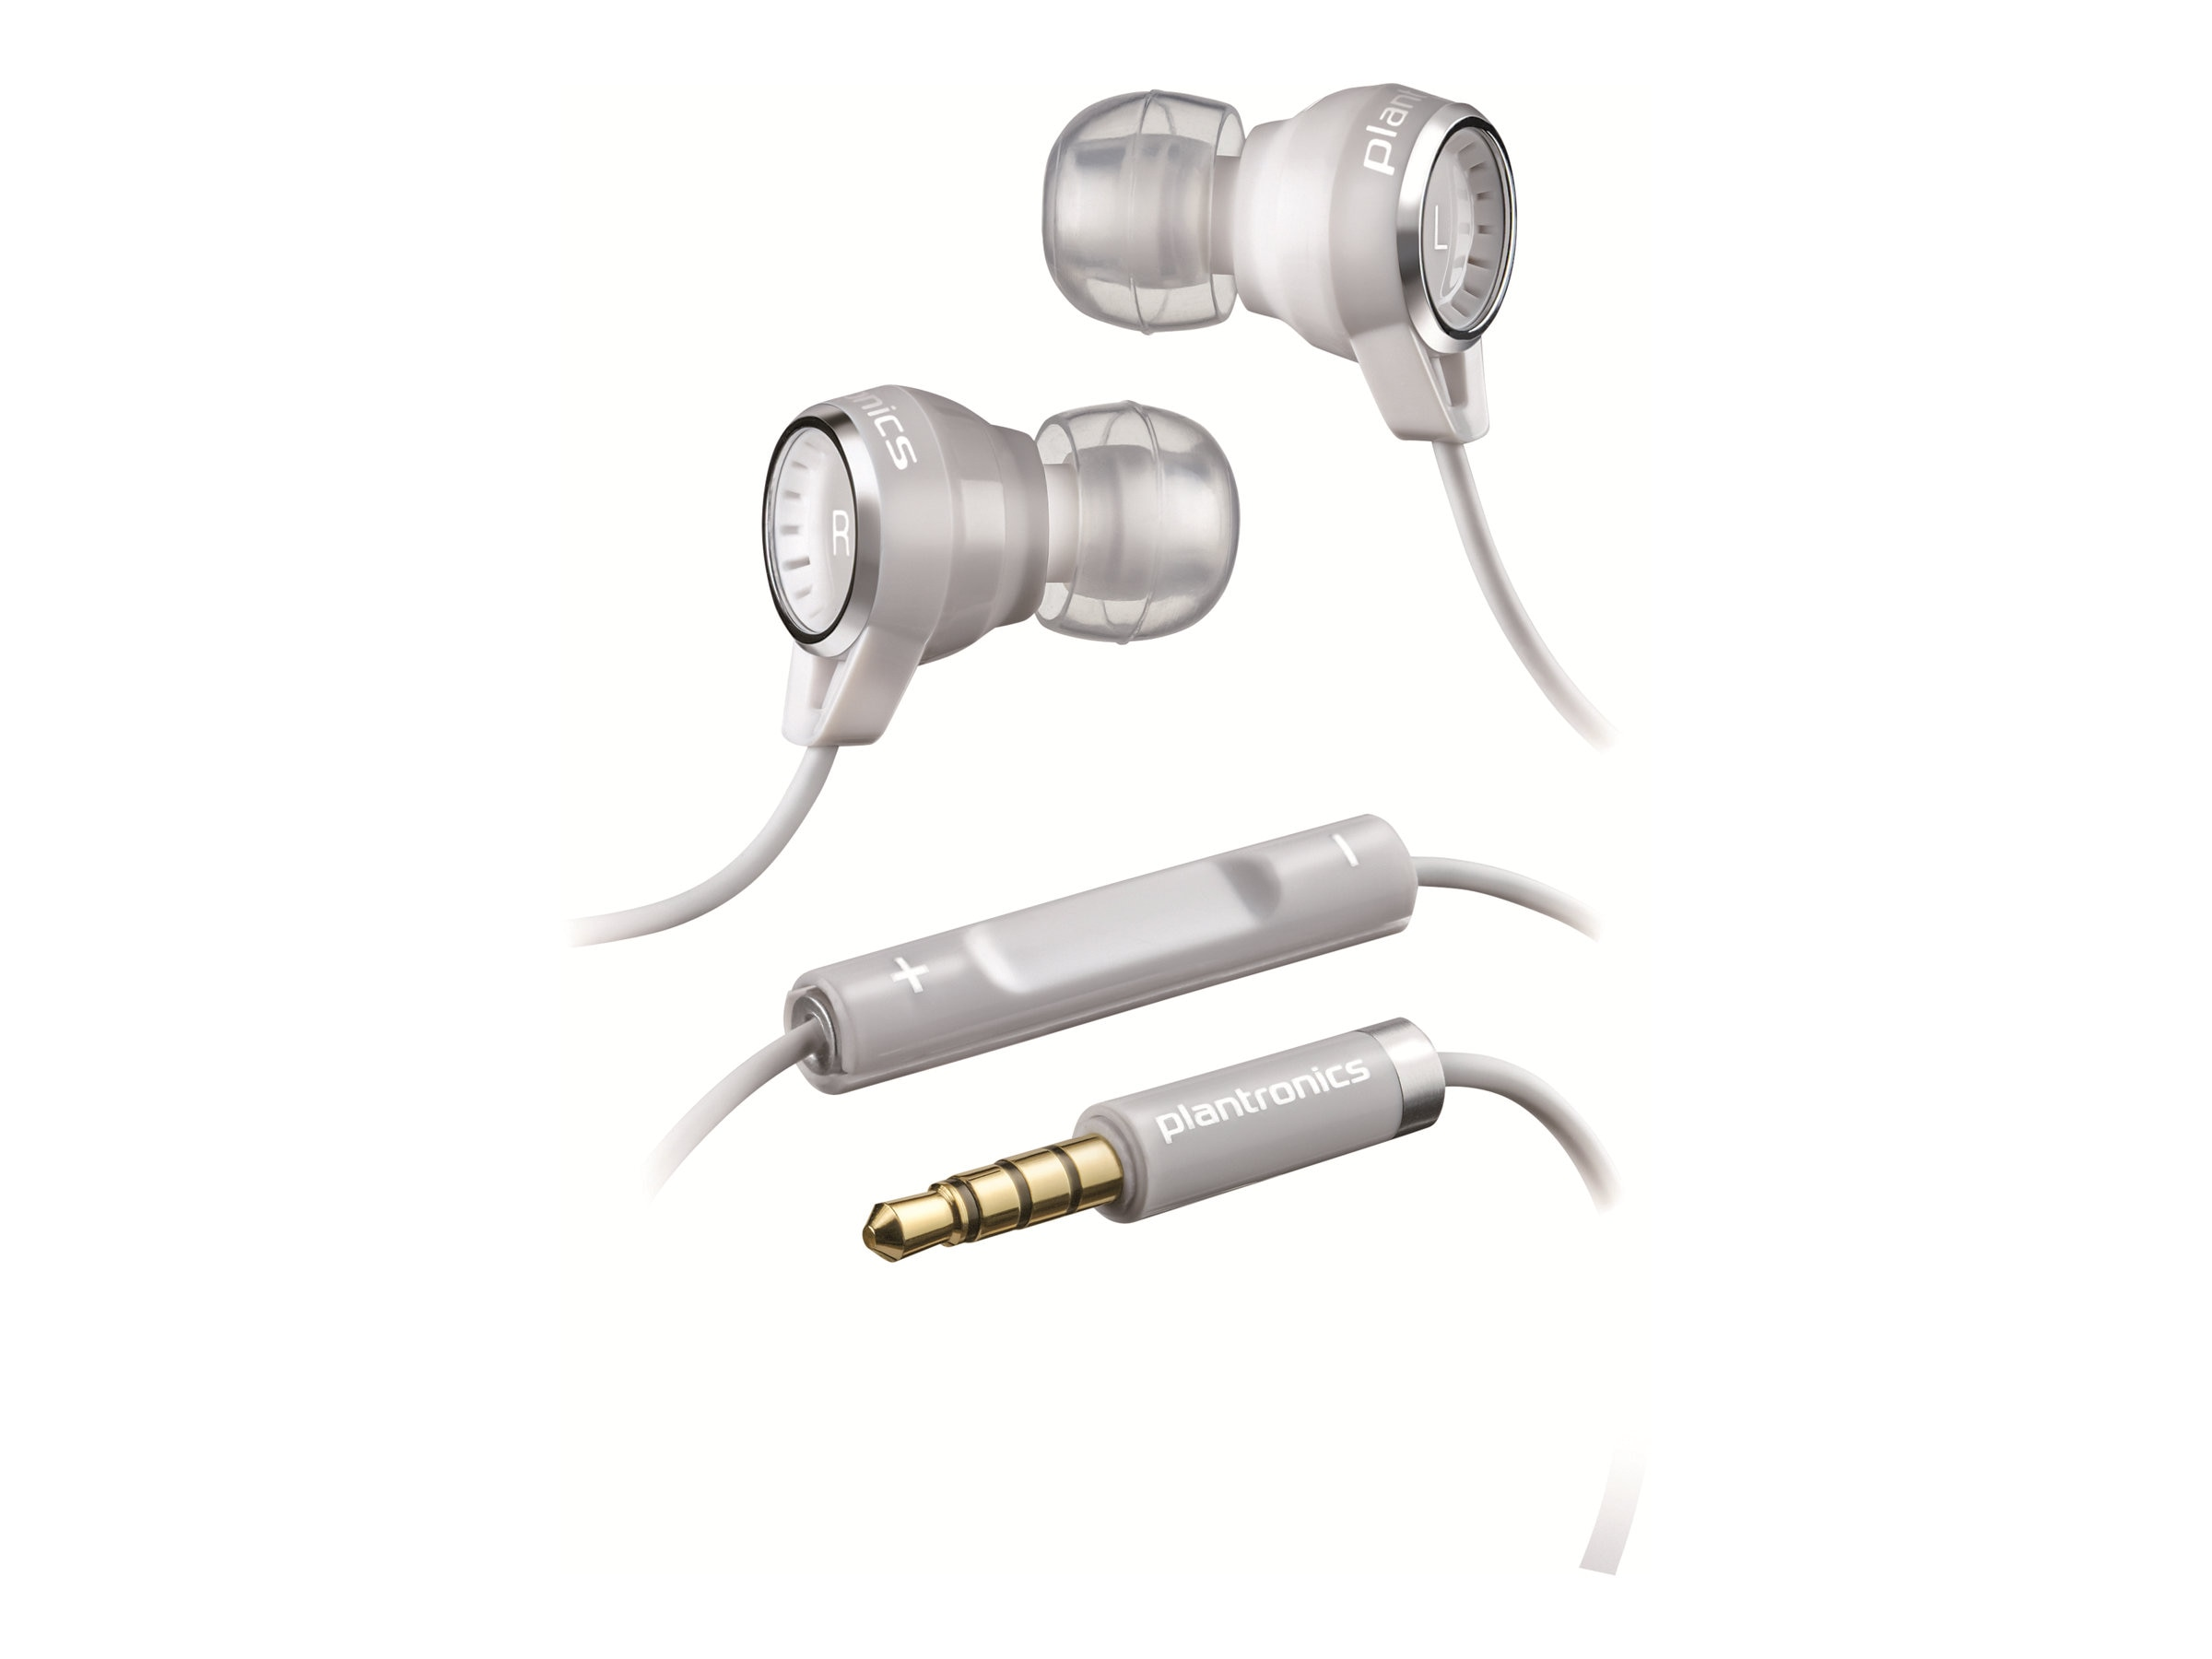 Plantronics Stereo Headphones with Mic for iPhone MP3, White, 86110-01, 14543065, Headsets (w/ microphone)